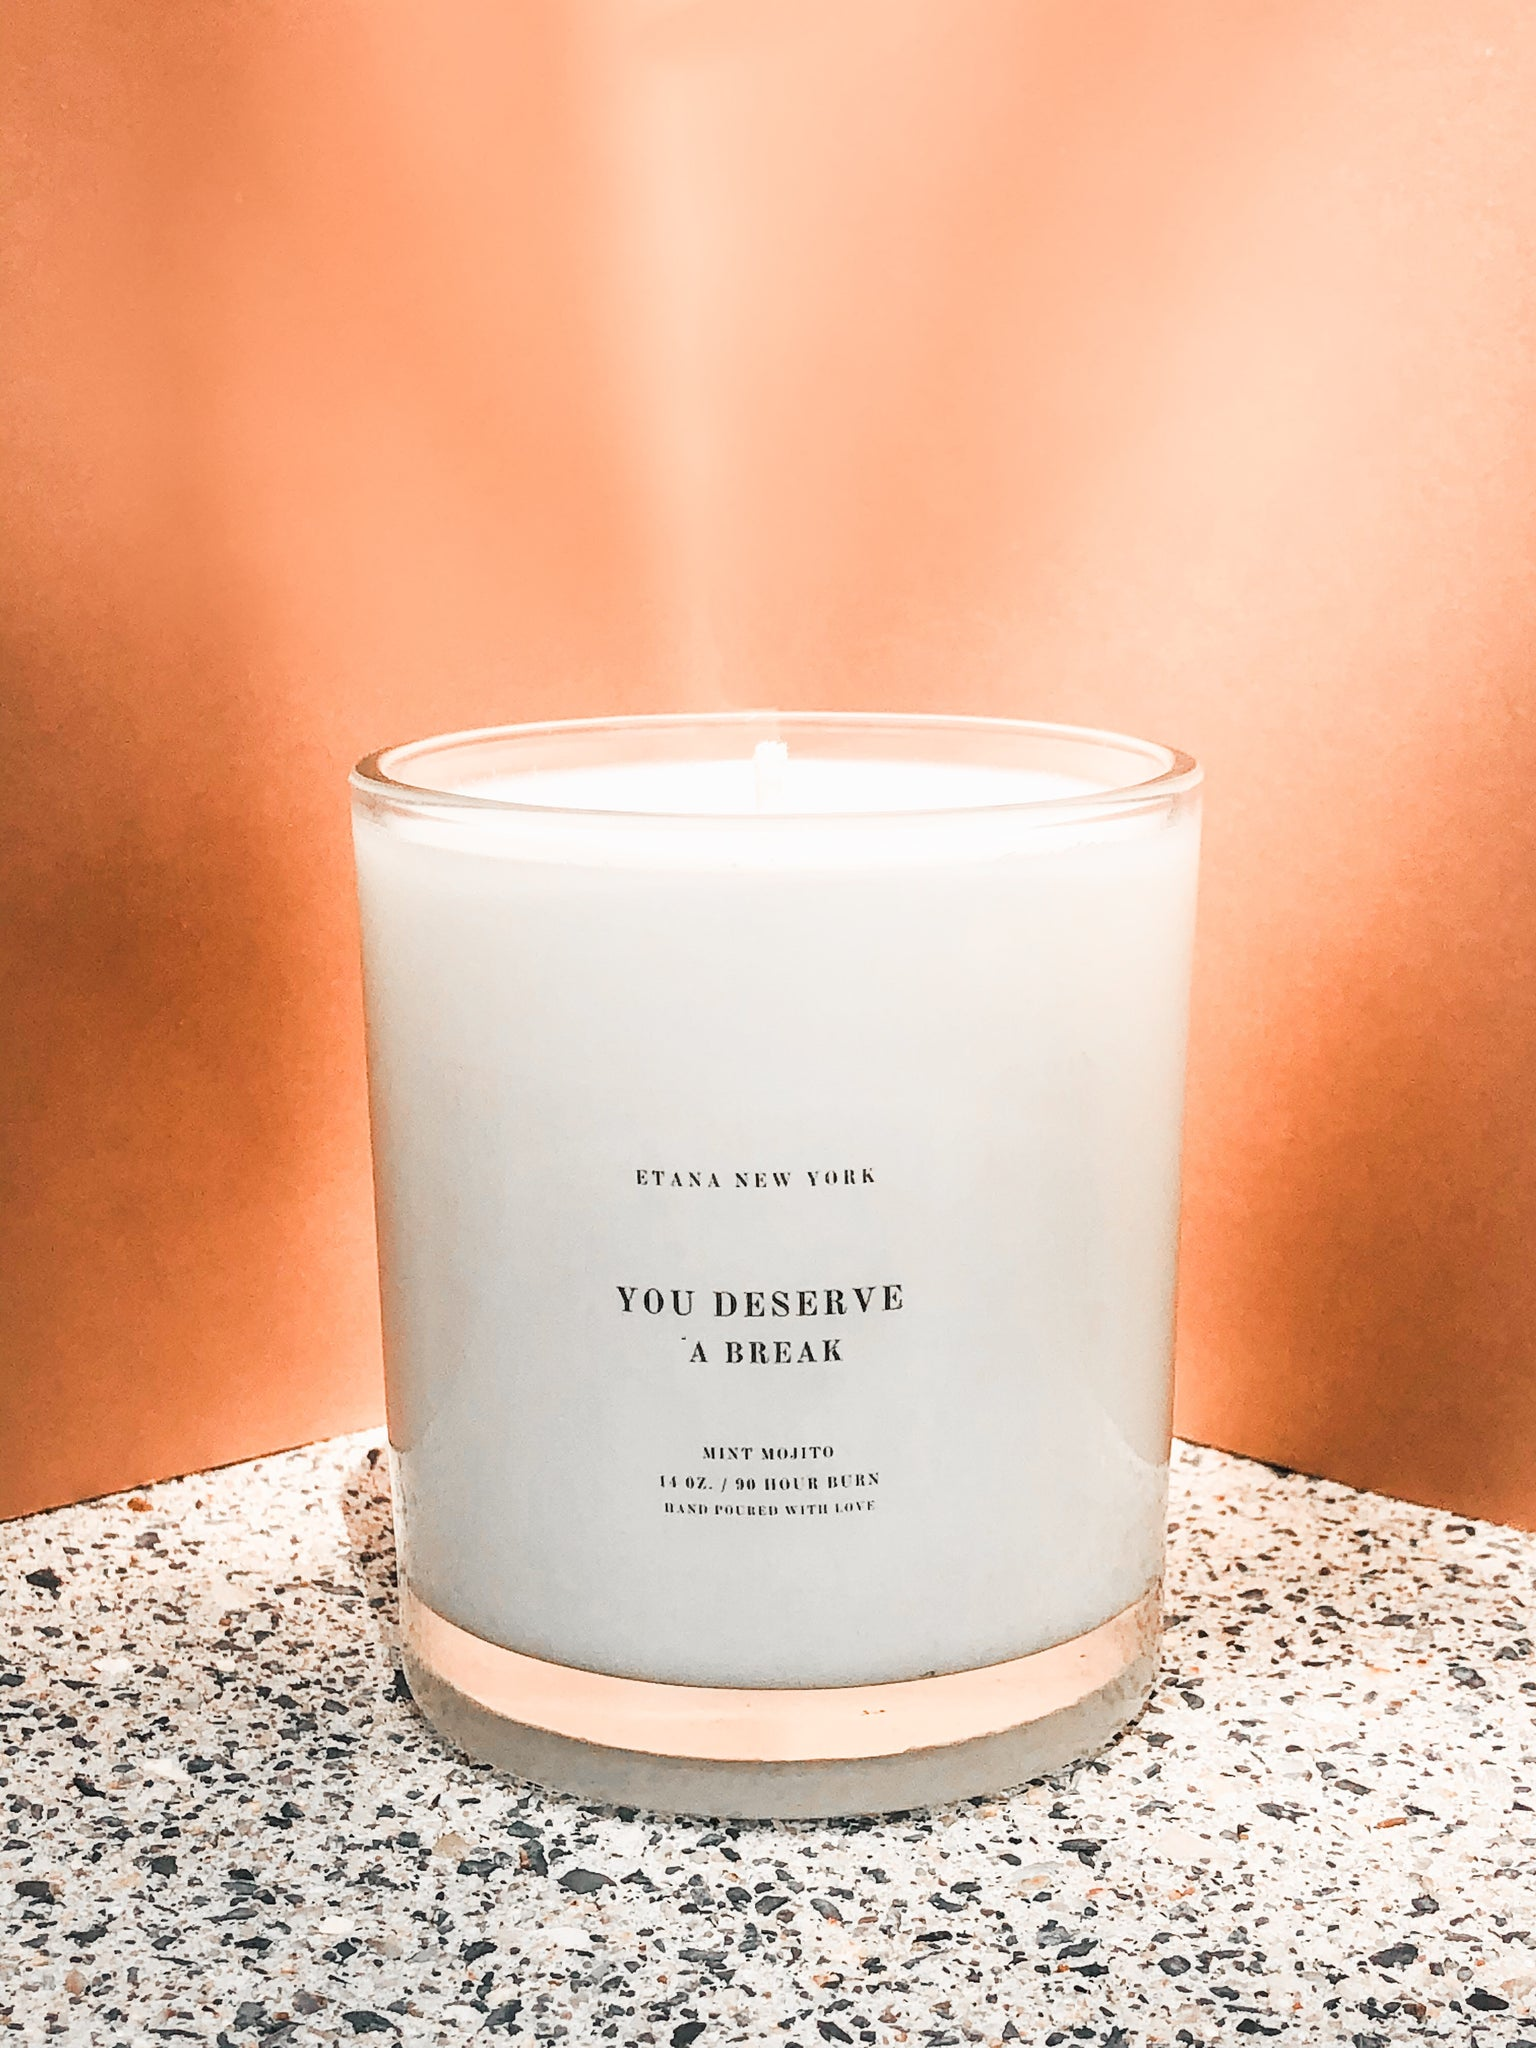 You Deserve 14 oz. Candle